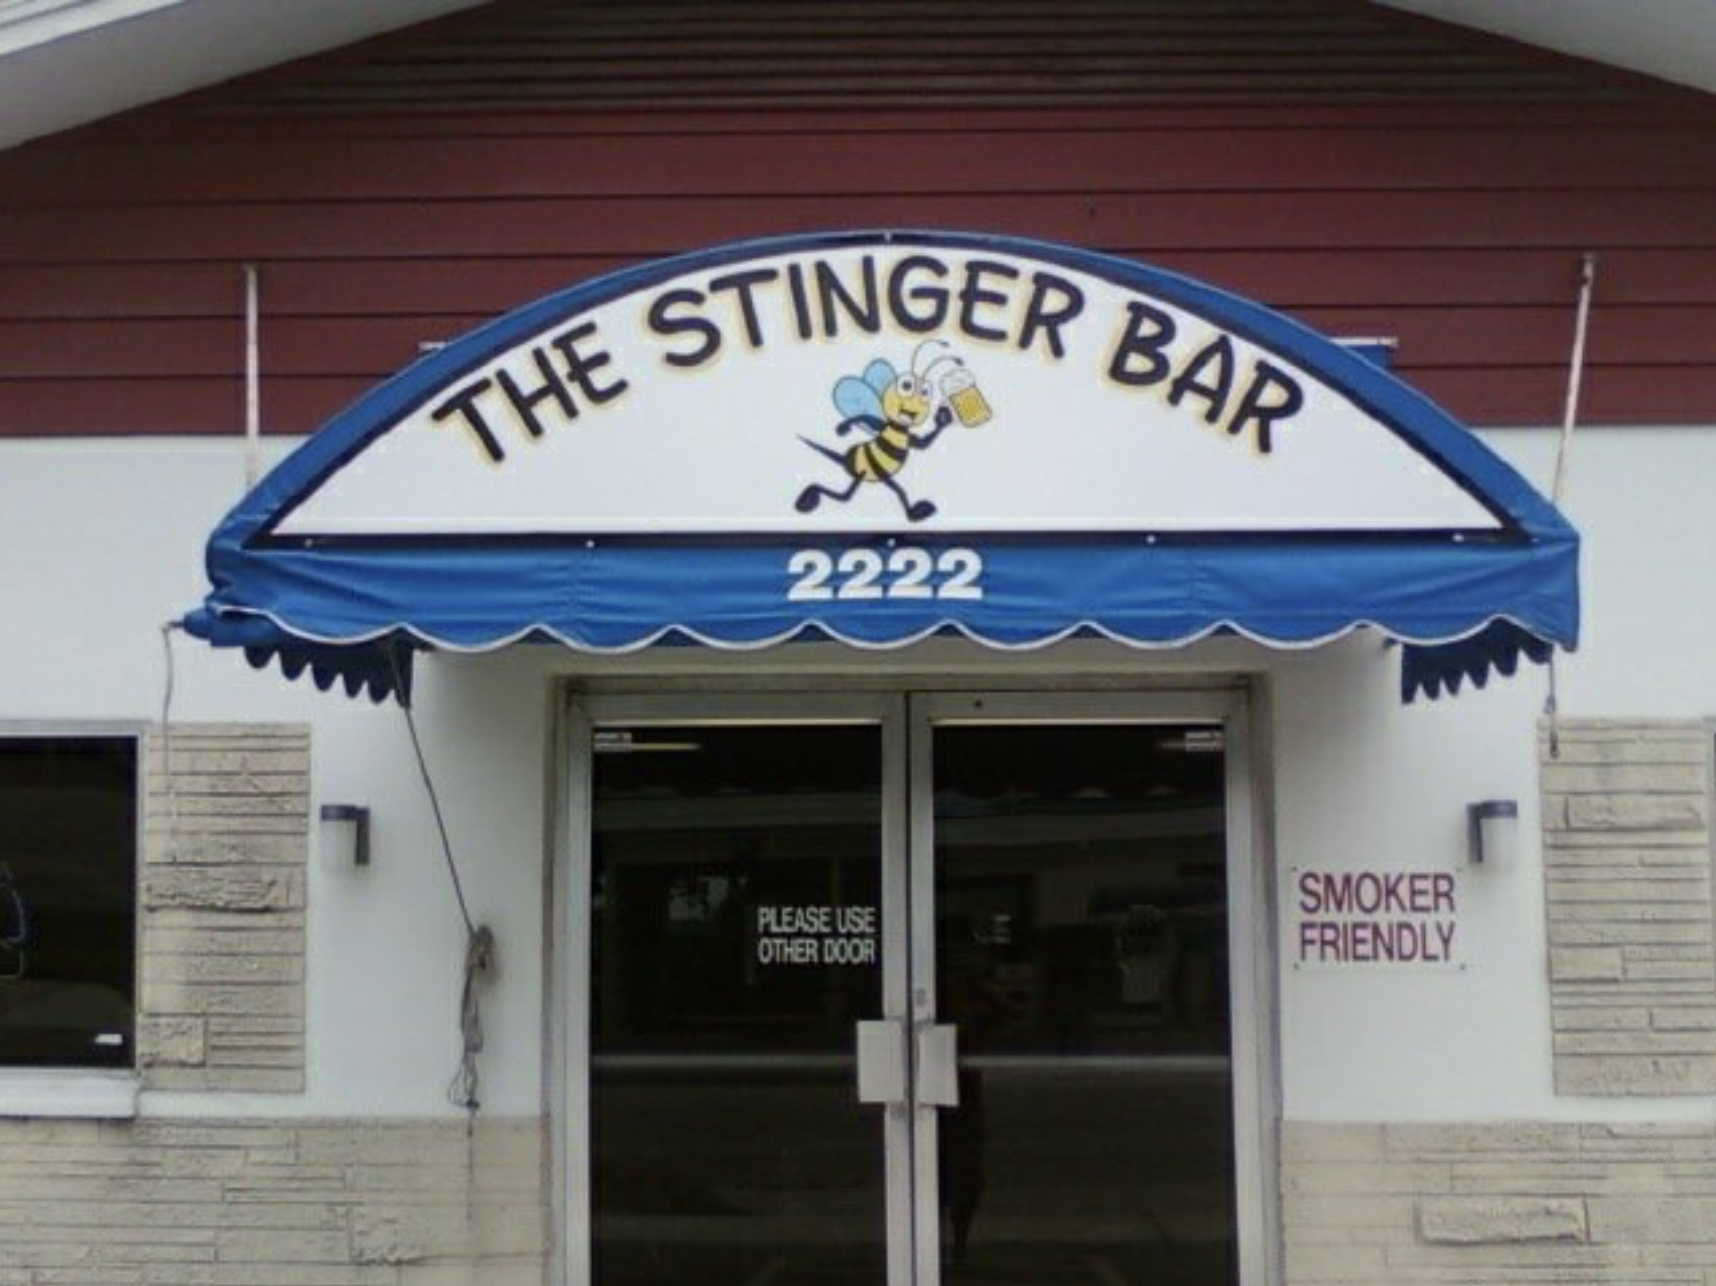 """The front entrance awning for The Stinger Bar that reads """"The Stinger Bar"""""""